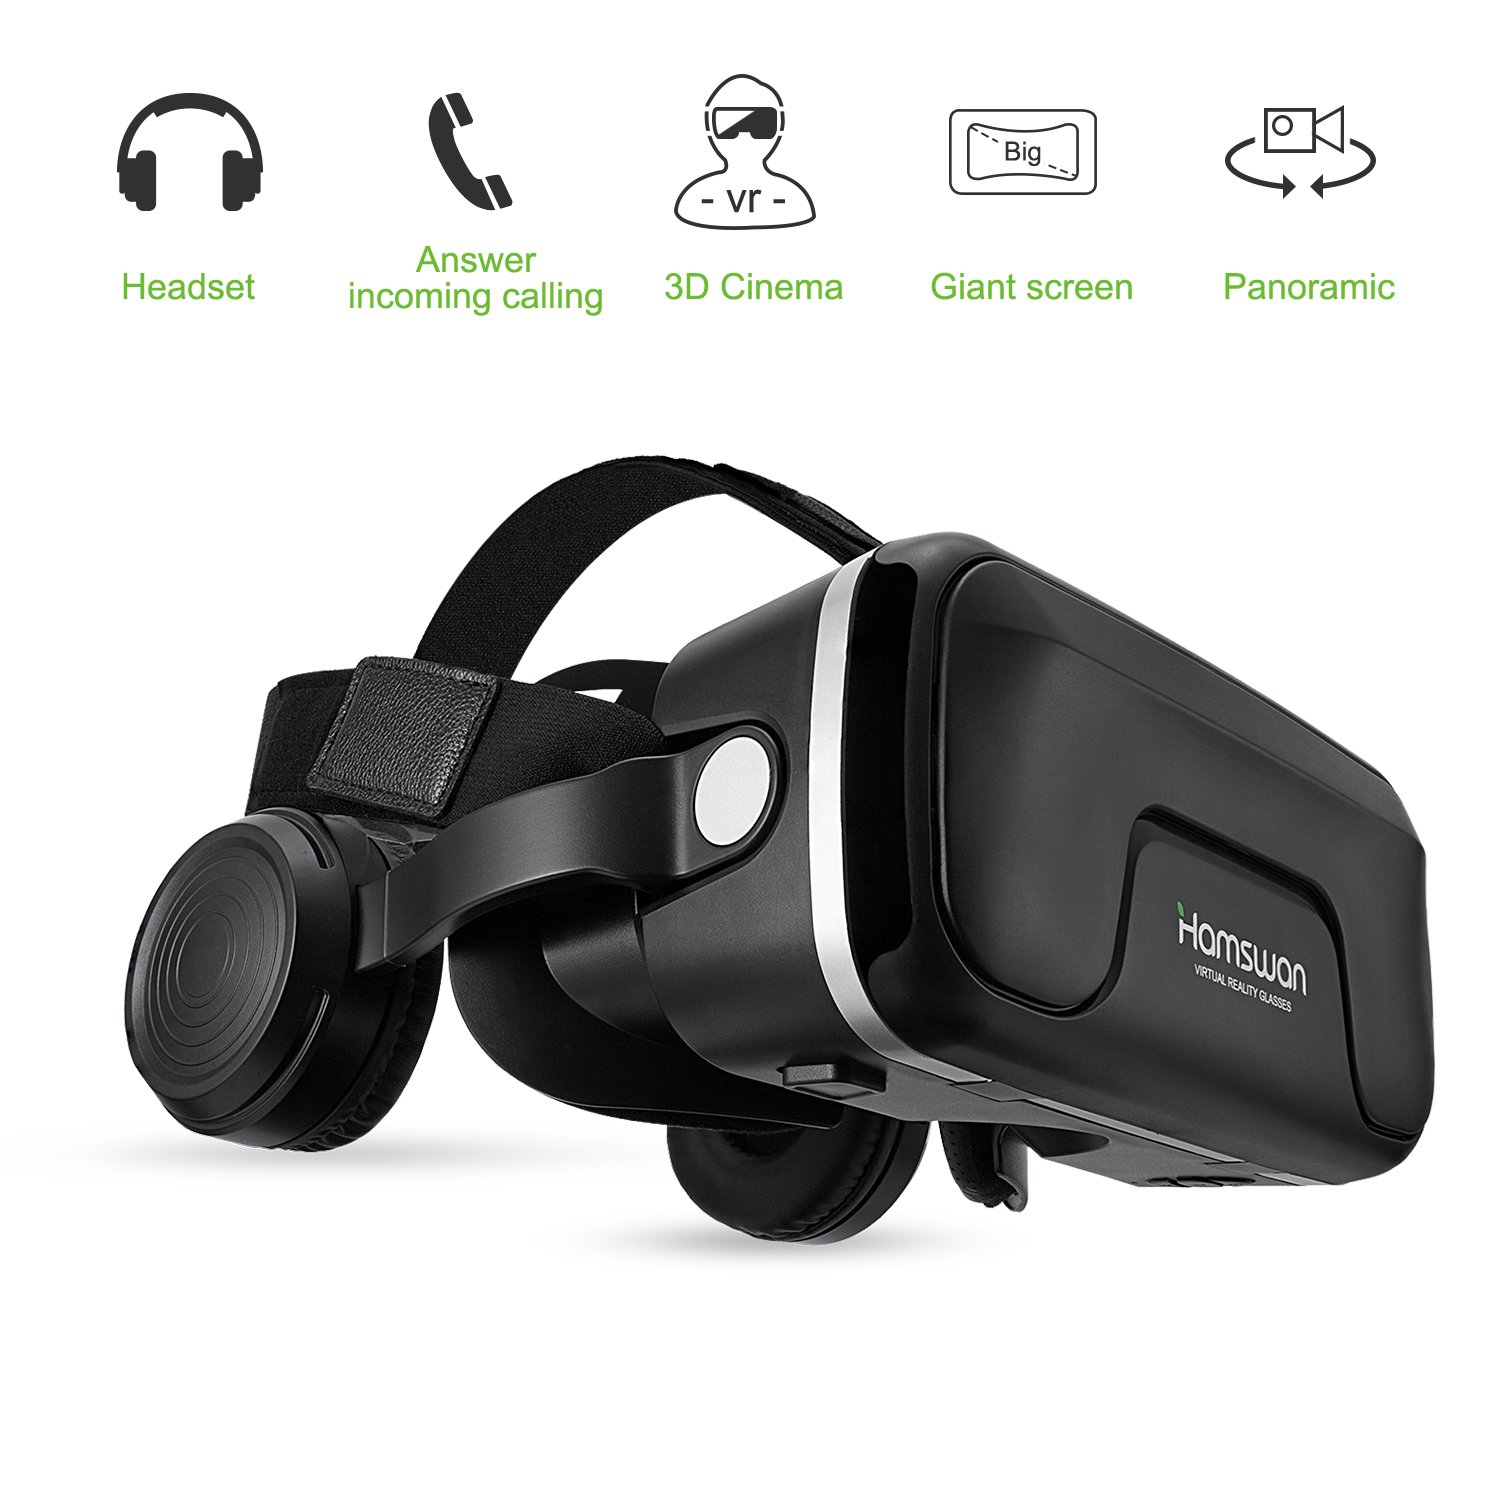 VR Headset, HAMSWAN 3D VR Glasses VR Goggles Virtual Reality Headset Goggles with Built-in Headset, Adjustable Belt, 120 Degree FOV and Multifunction Button Compatible with iPhone and Android phones